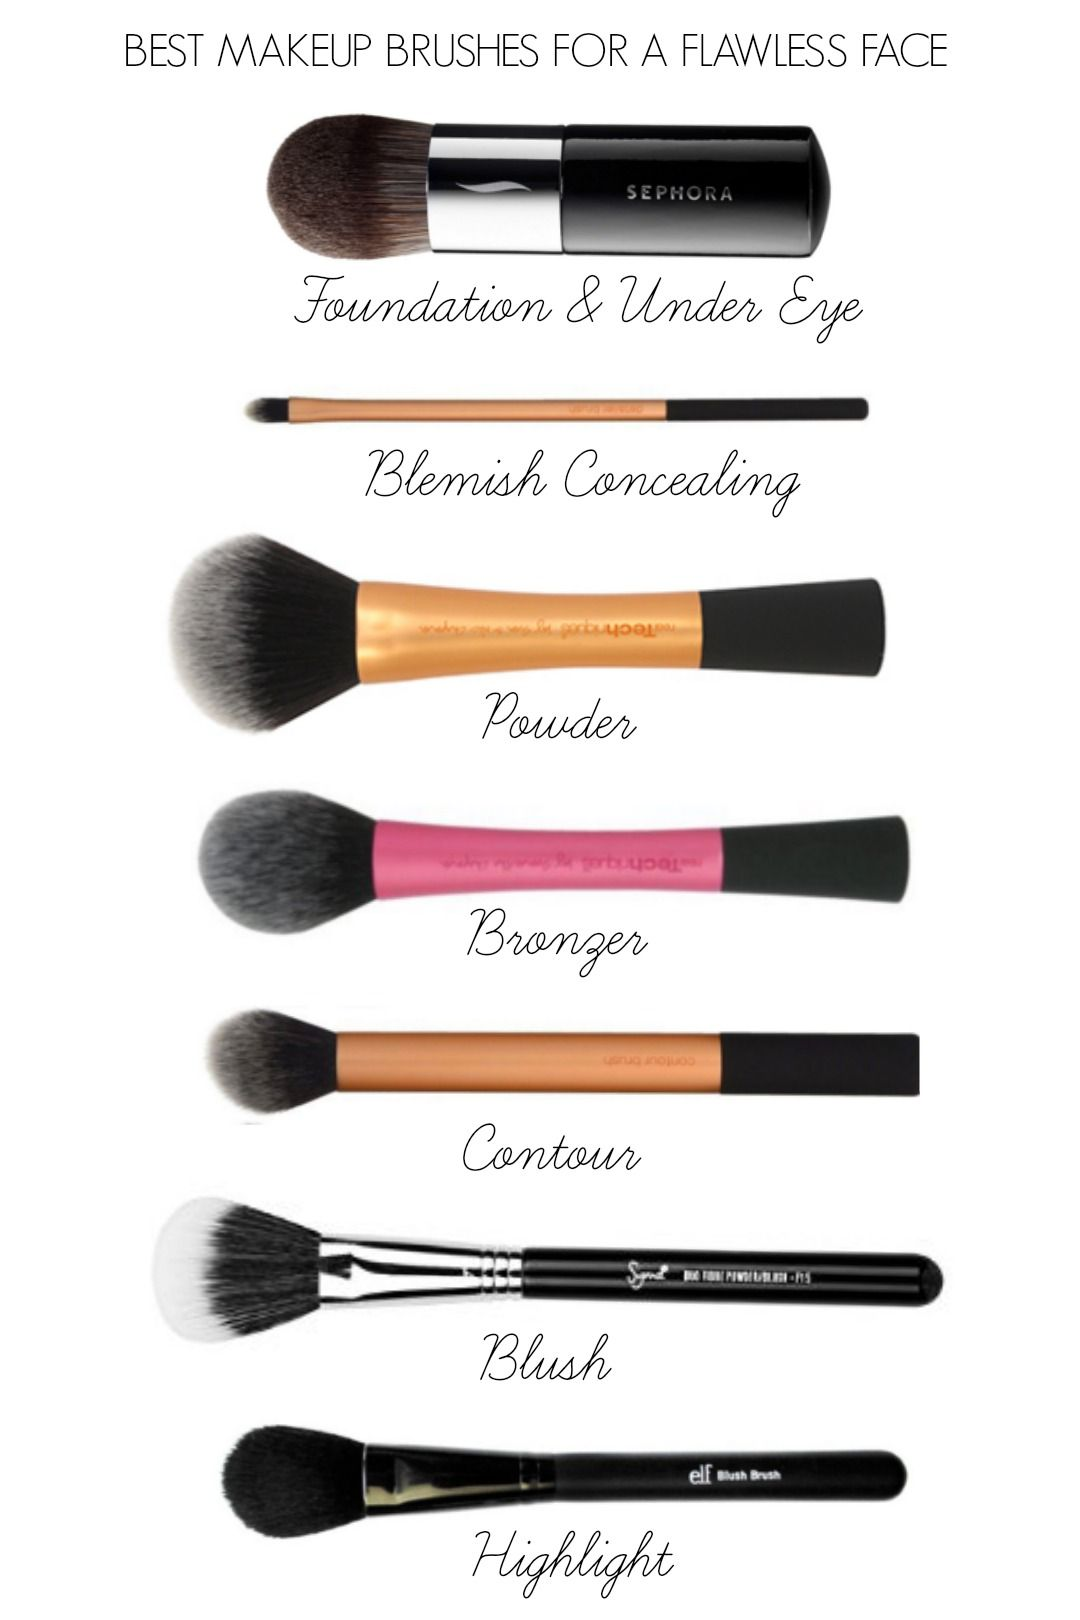 BEST Makeup Brushes for a Flawless Face! The Styled